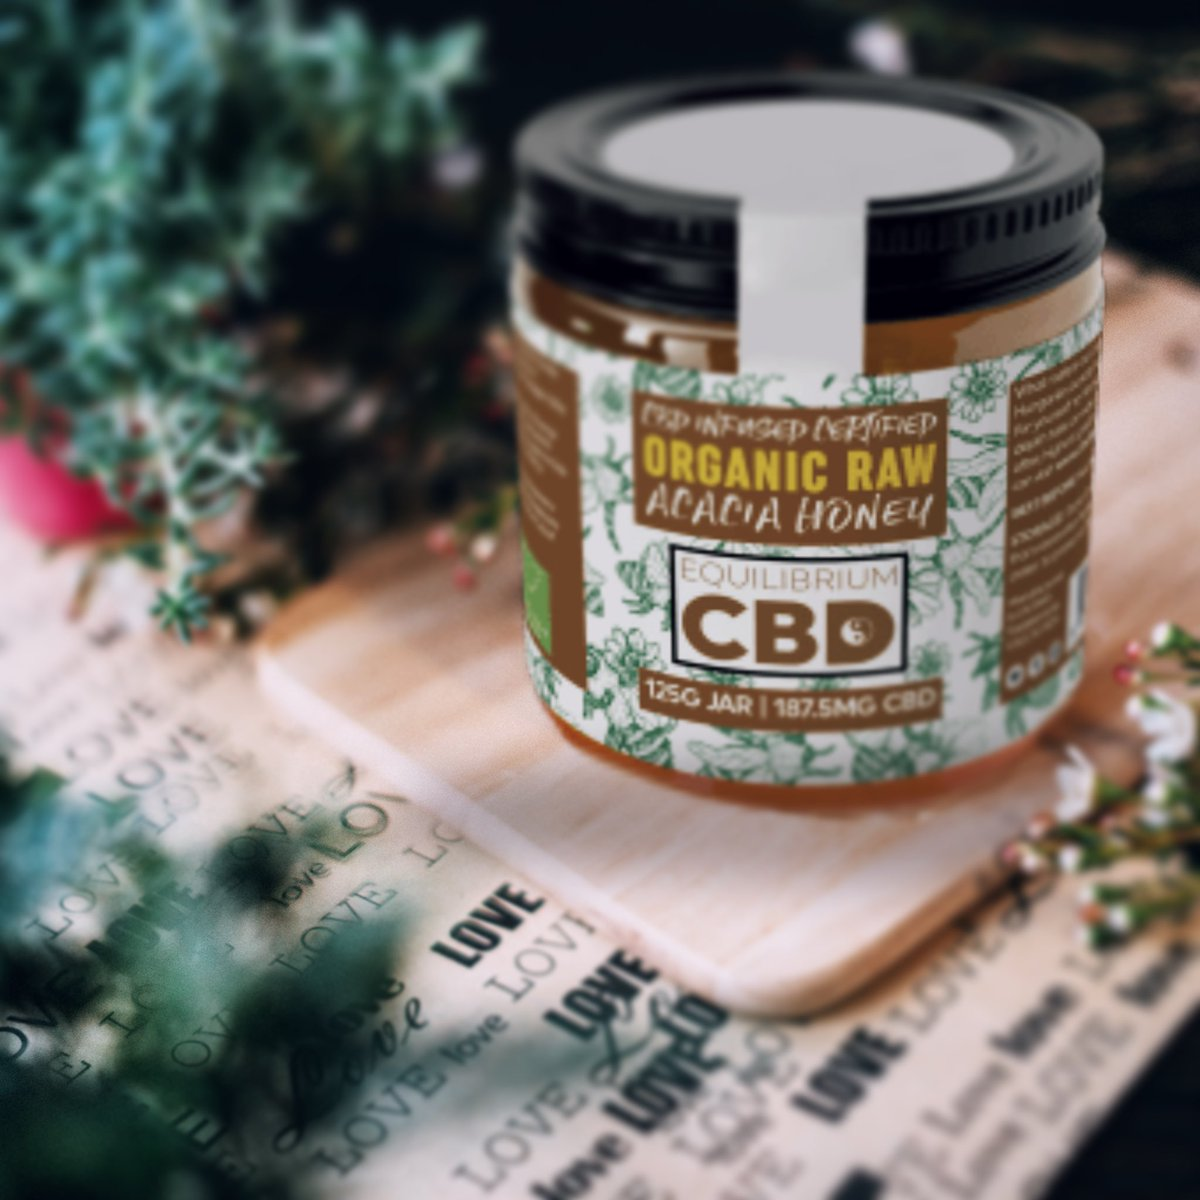 CBD honey is a potent combination. When you combine our high quality CBD extracts, with our premium grade certified organic raw Hungarian acacia honey, well then you have something truly special.  #Cbd #fractional #selflove #positivity #healing #health #thcfree #me #love #fitness https://t.co/BOSiDMnJIB